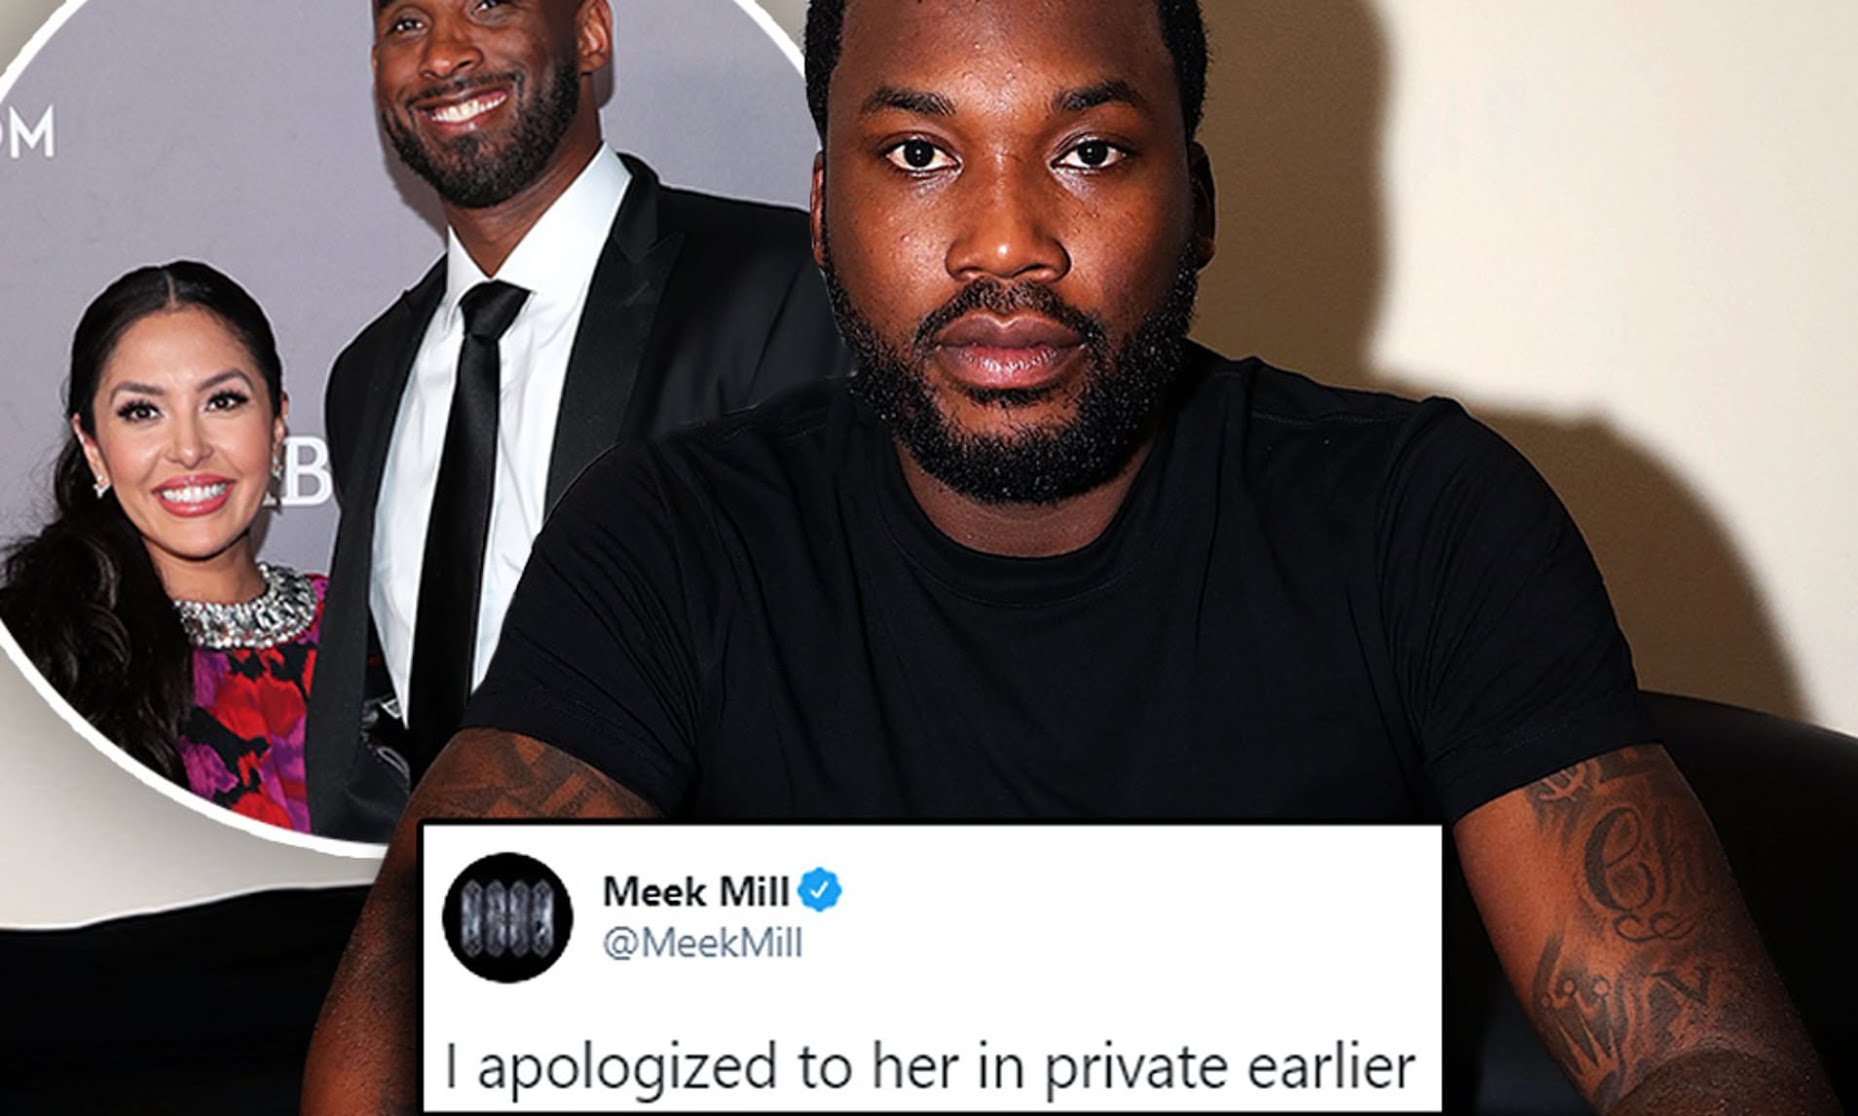 Meek Mill says he apologized to Vanessa Bryant